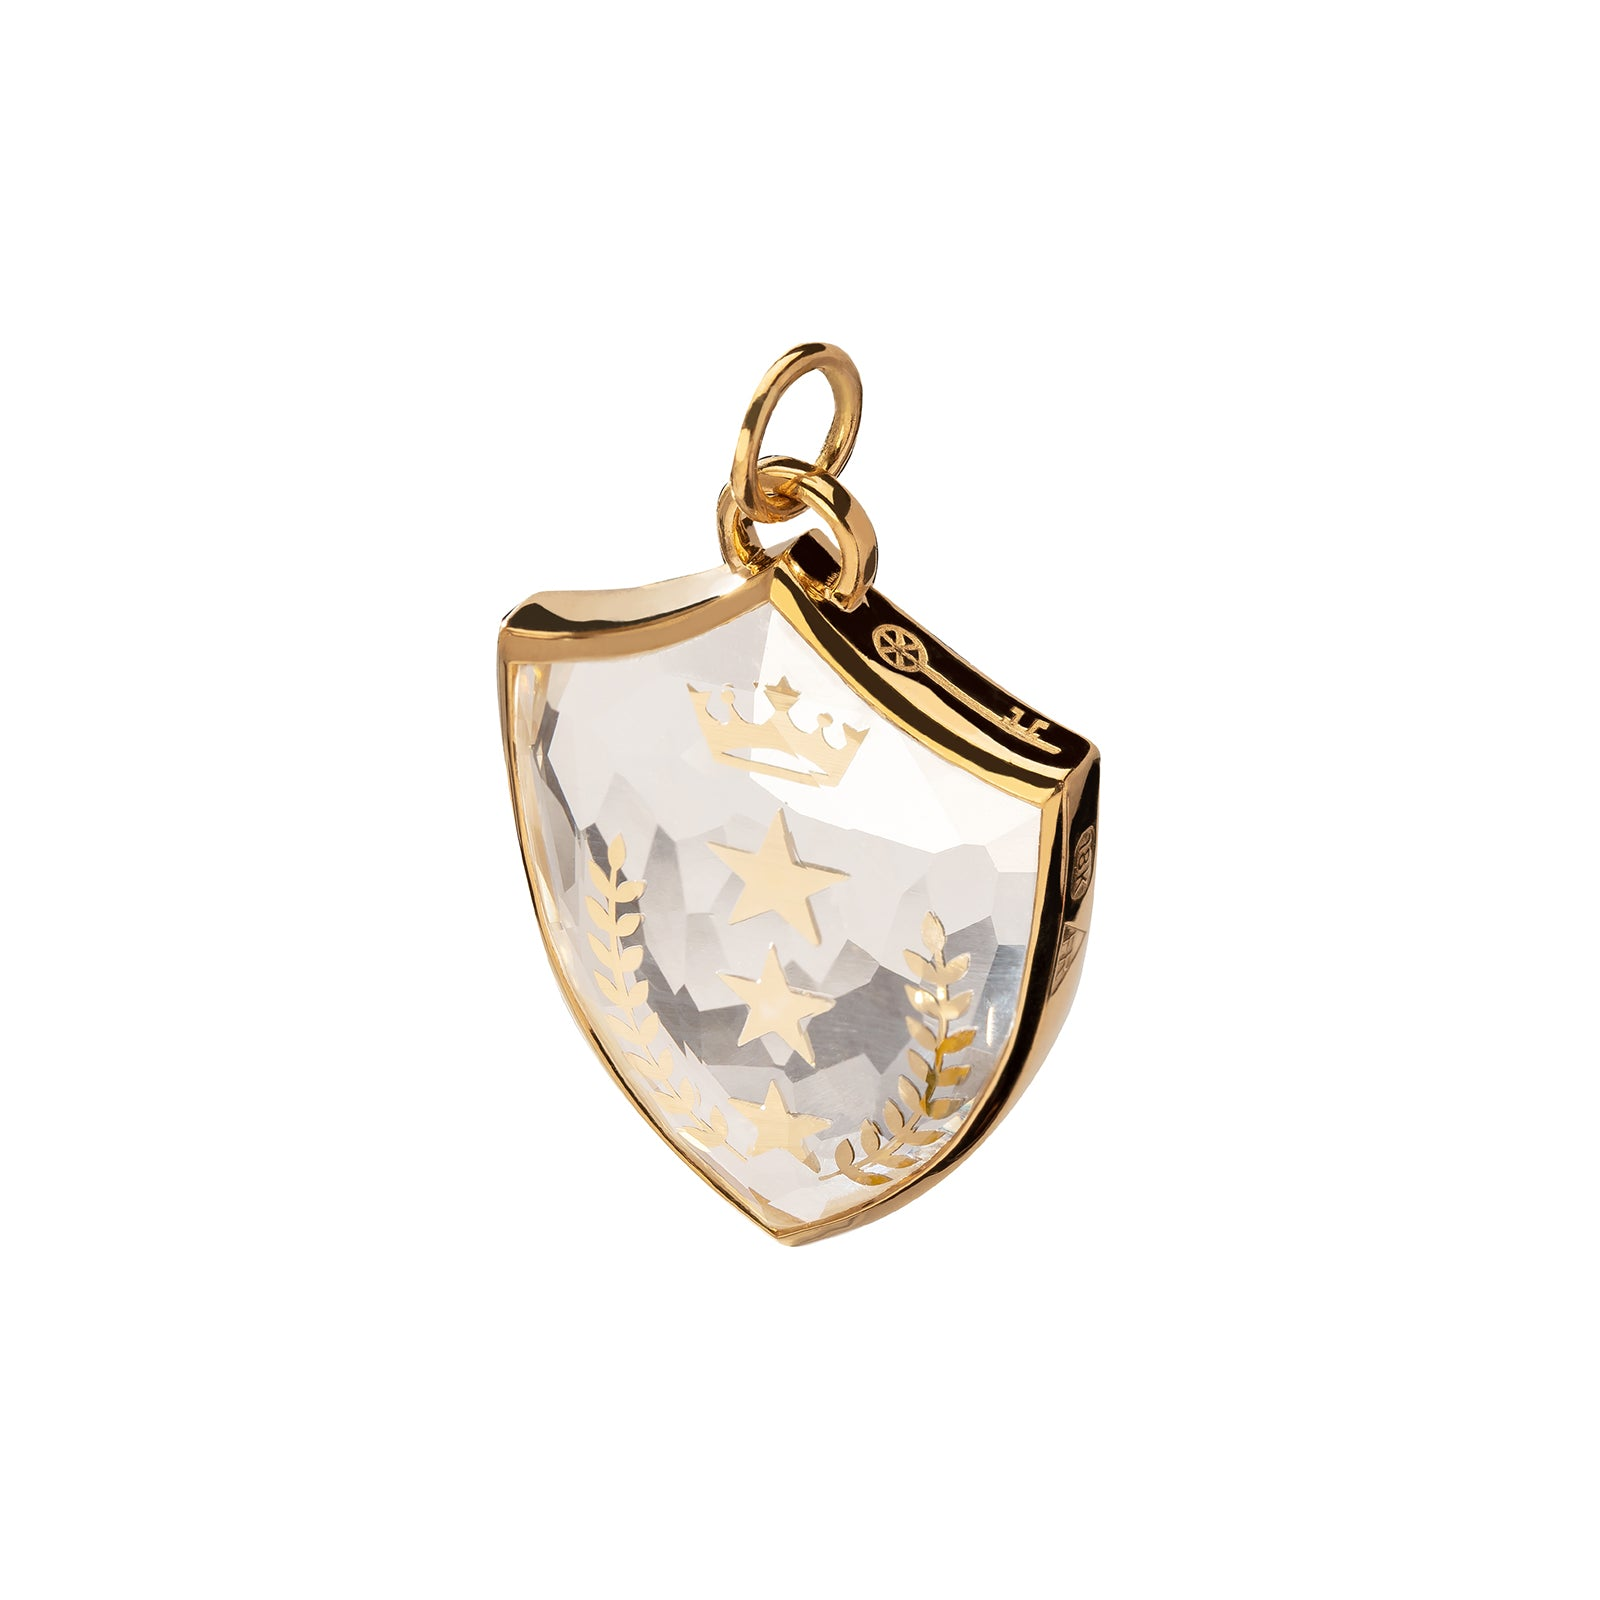 Foundrae Large Sealed Gemstone Crest Pendant - Per Aspera Ad Astra - Charms & Pendants - Broken English Jewelry